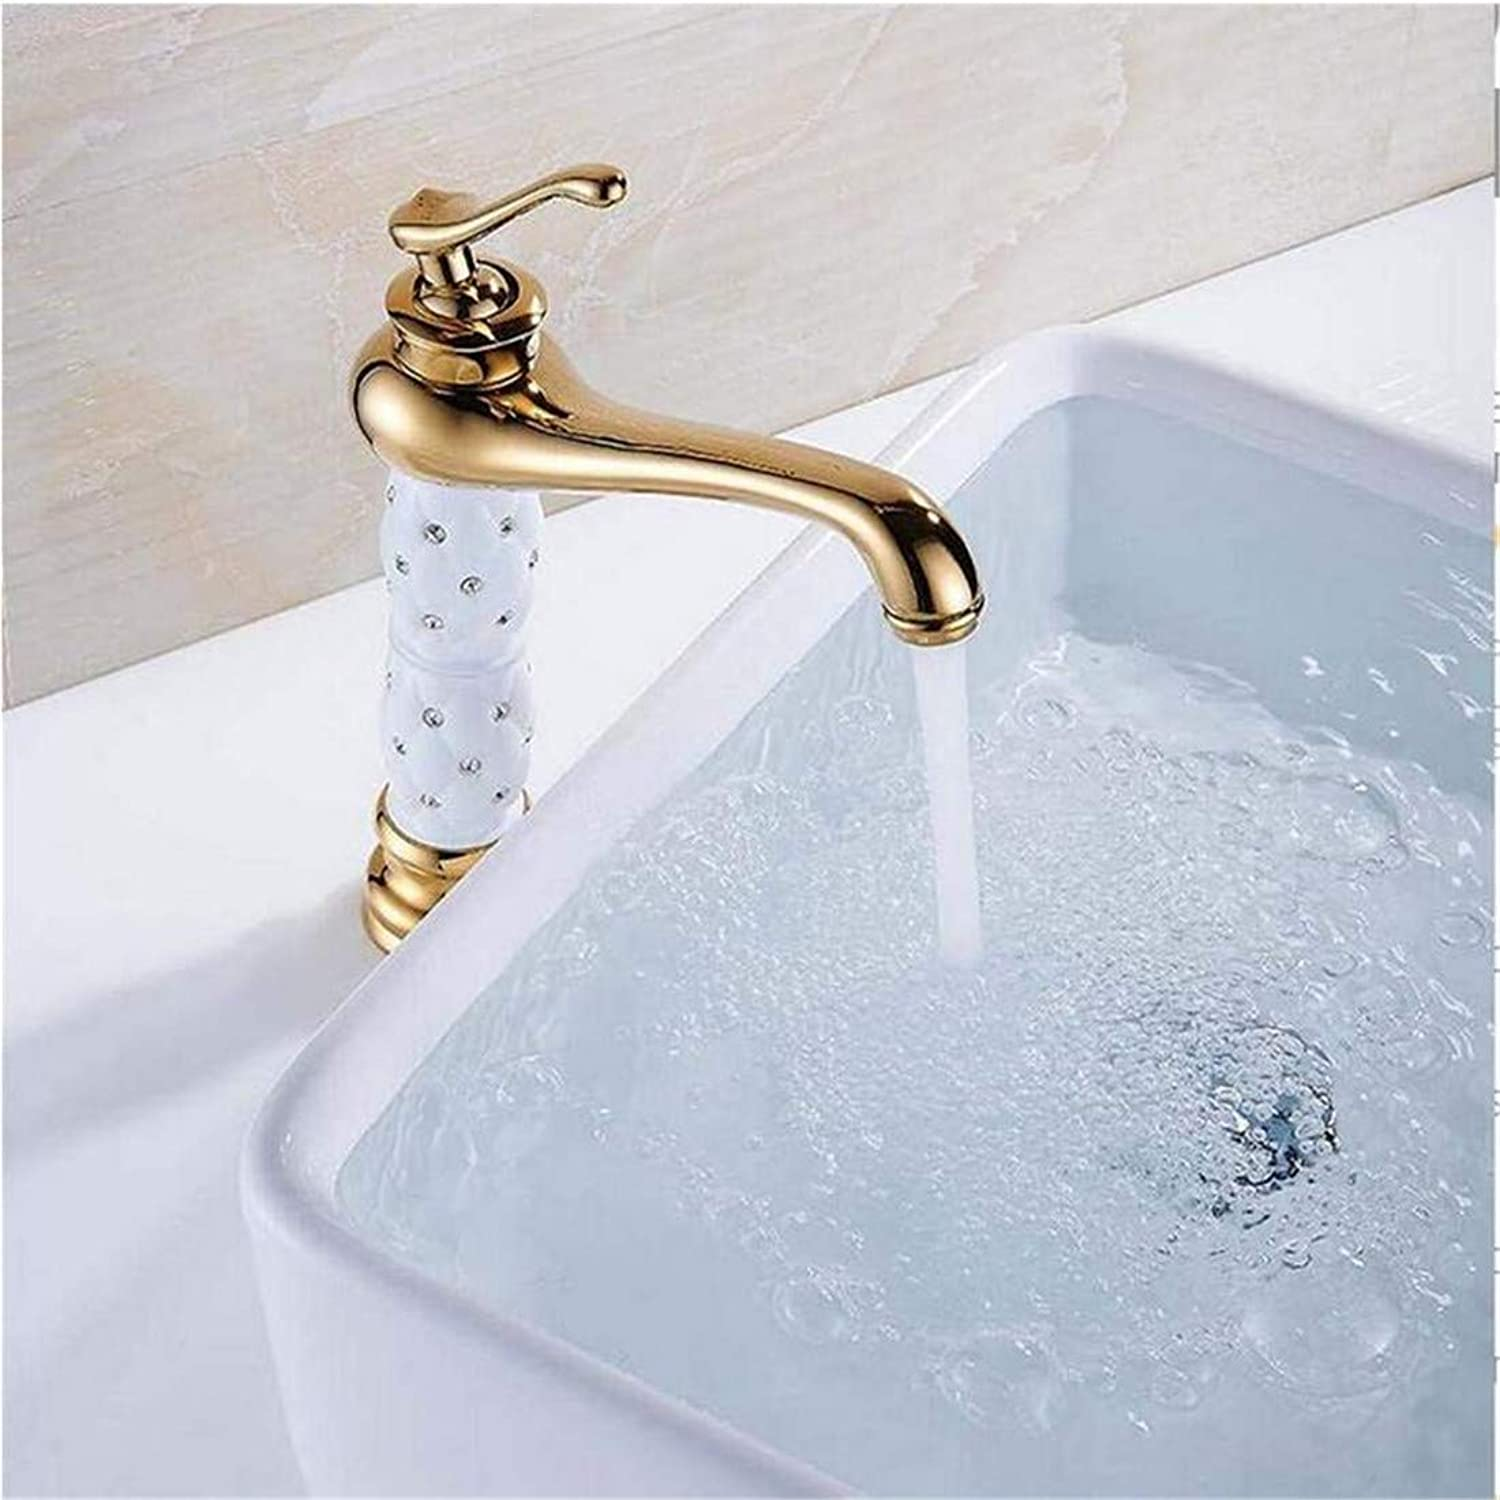 Stainless Steel Vintage Brasswashbasin Faucet Luxury Tall Bathroom Basin Taps Single Handle Vanity Single Hole Mixer Water Taps